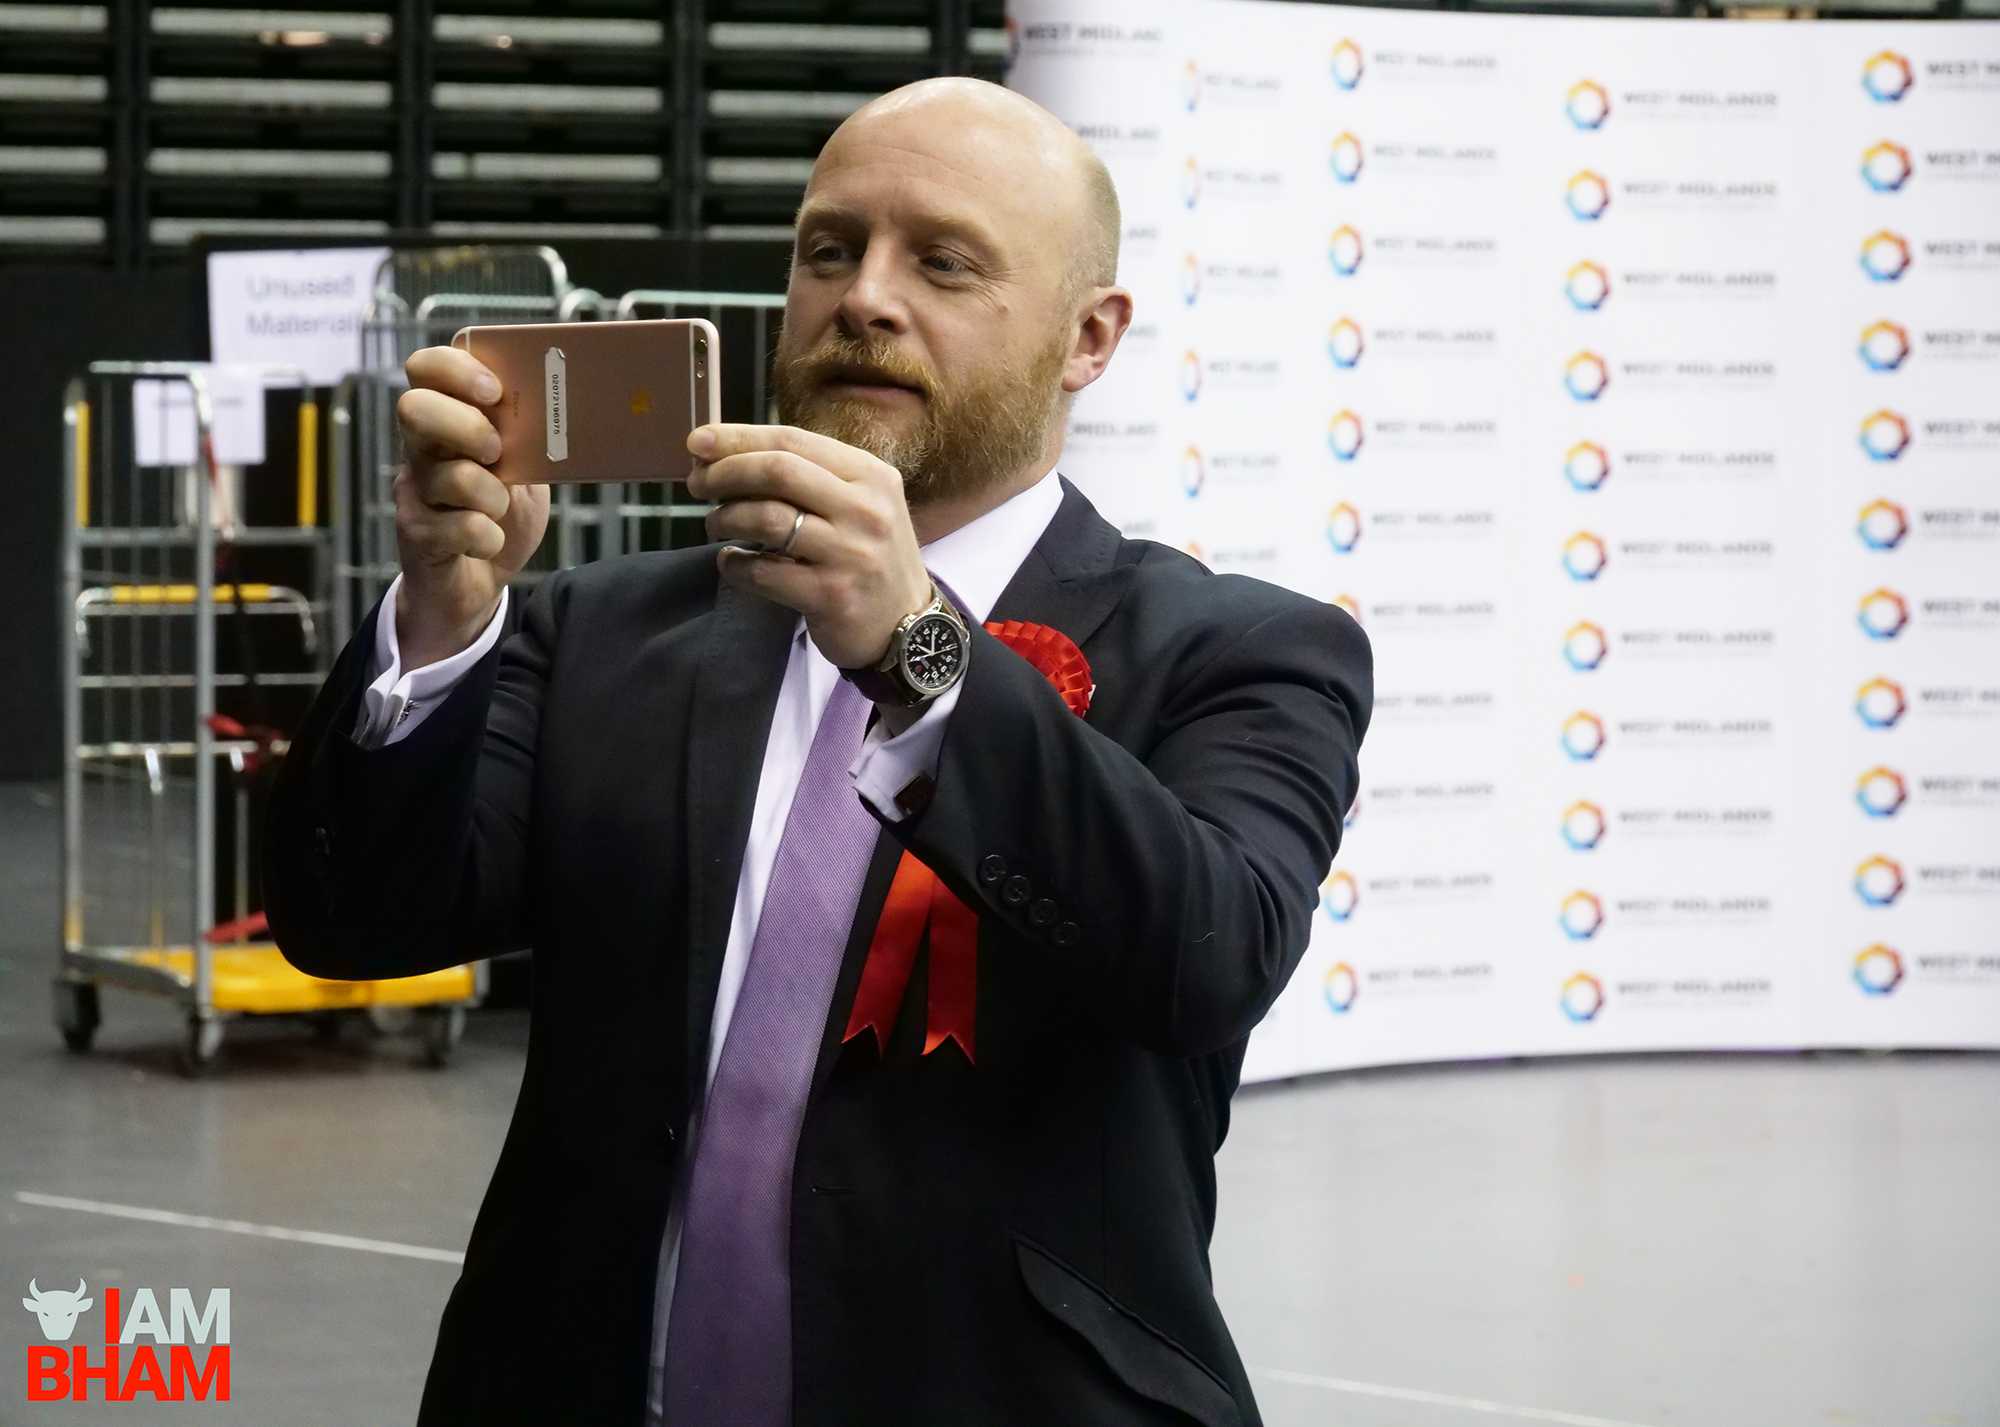 Birmingham Hodge Hill MP Liam Byrne takes a photo during the West Midlands Mayoral Election vote count